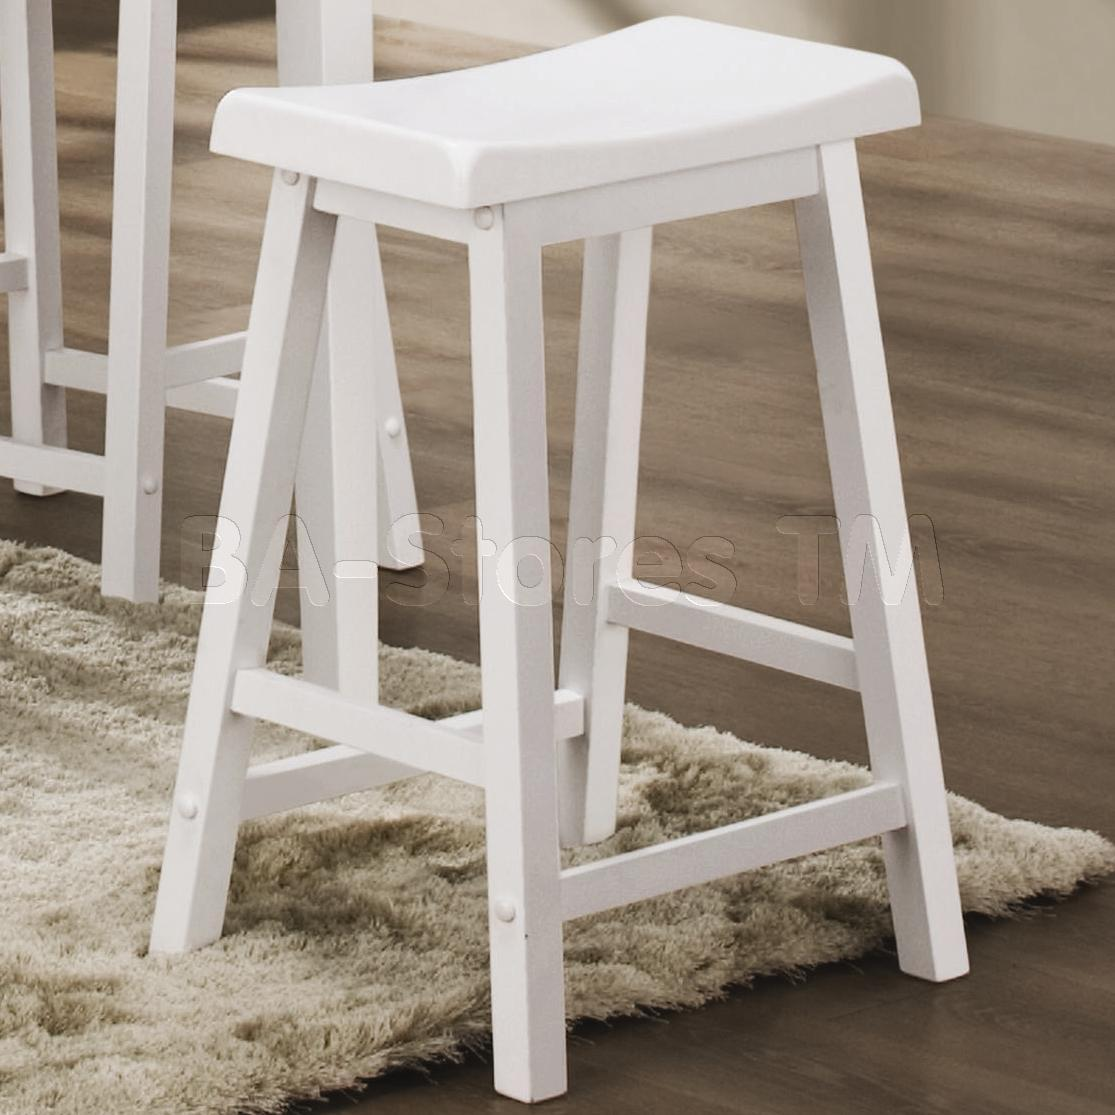 White Wood Bar Stools HomesFeed